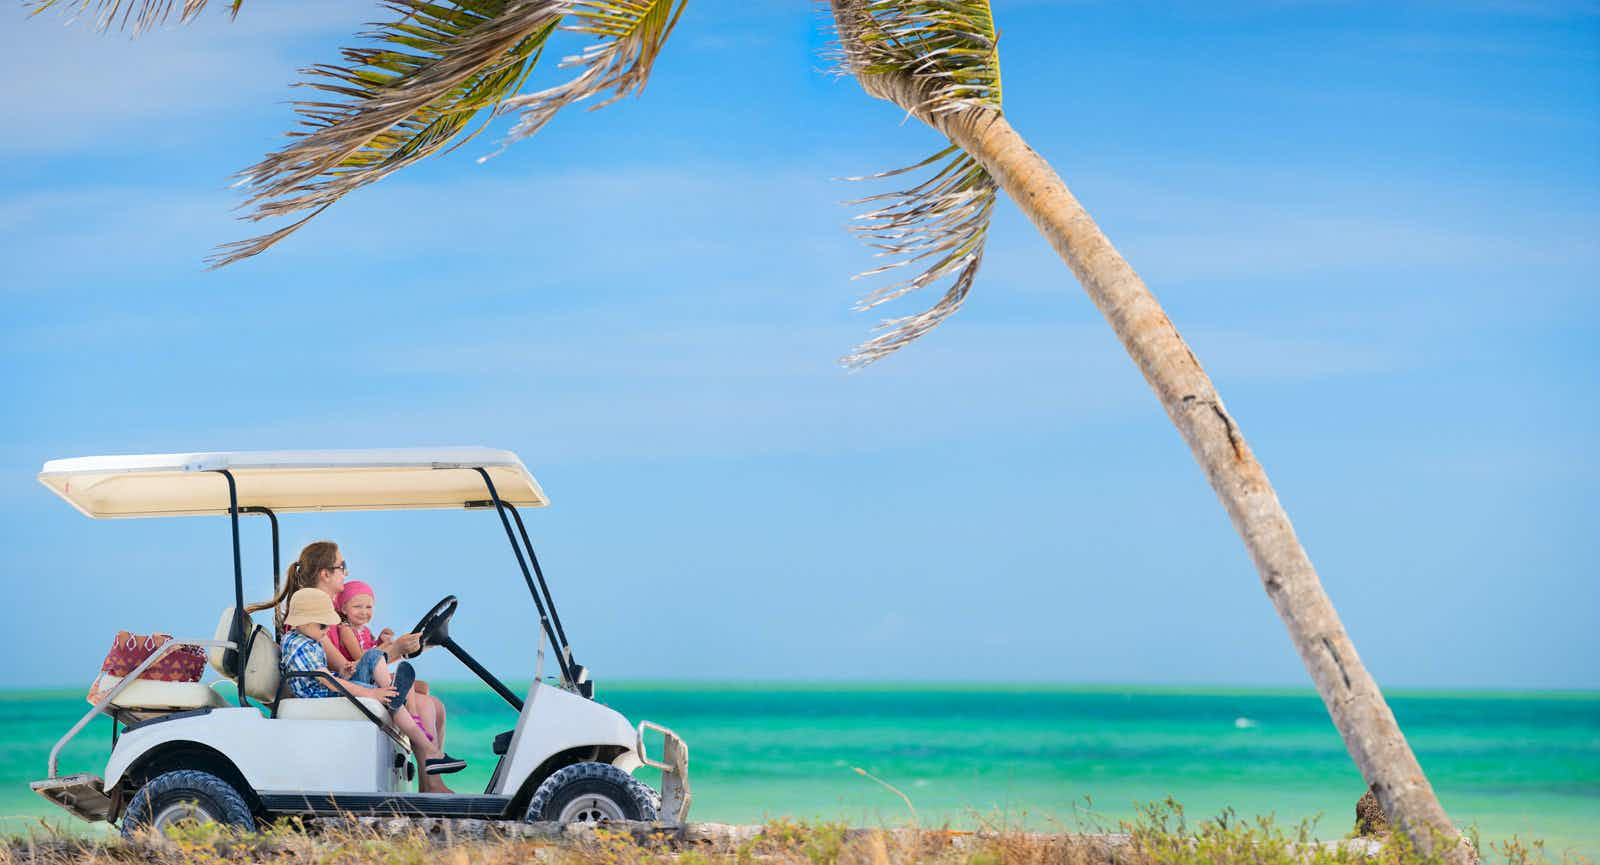 a woman drives a golf cart with a young girl on her lap and a boy next to her on the beach toward a palm tree